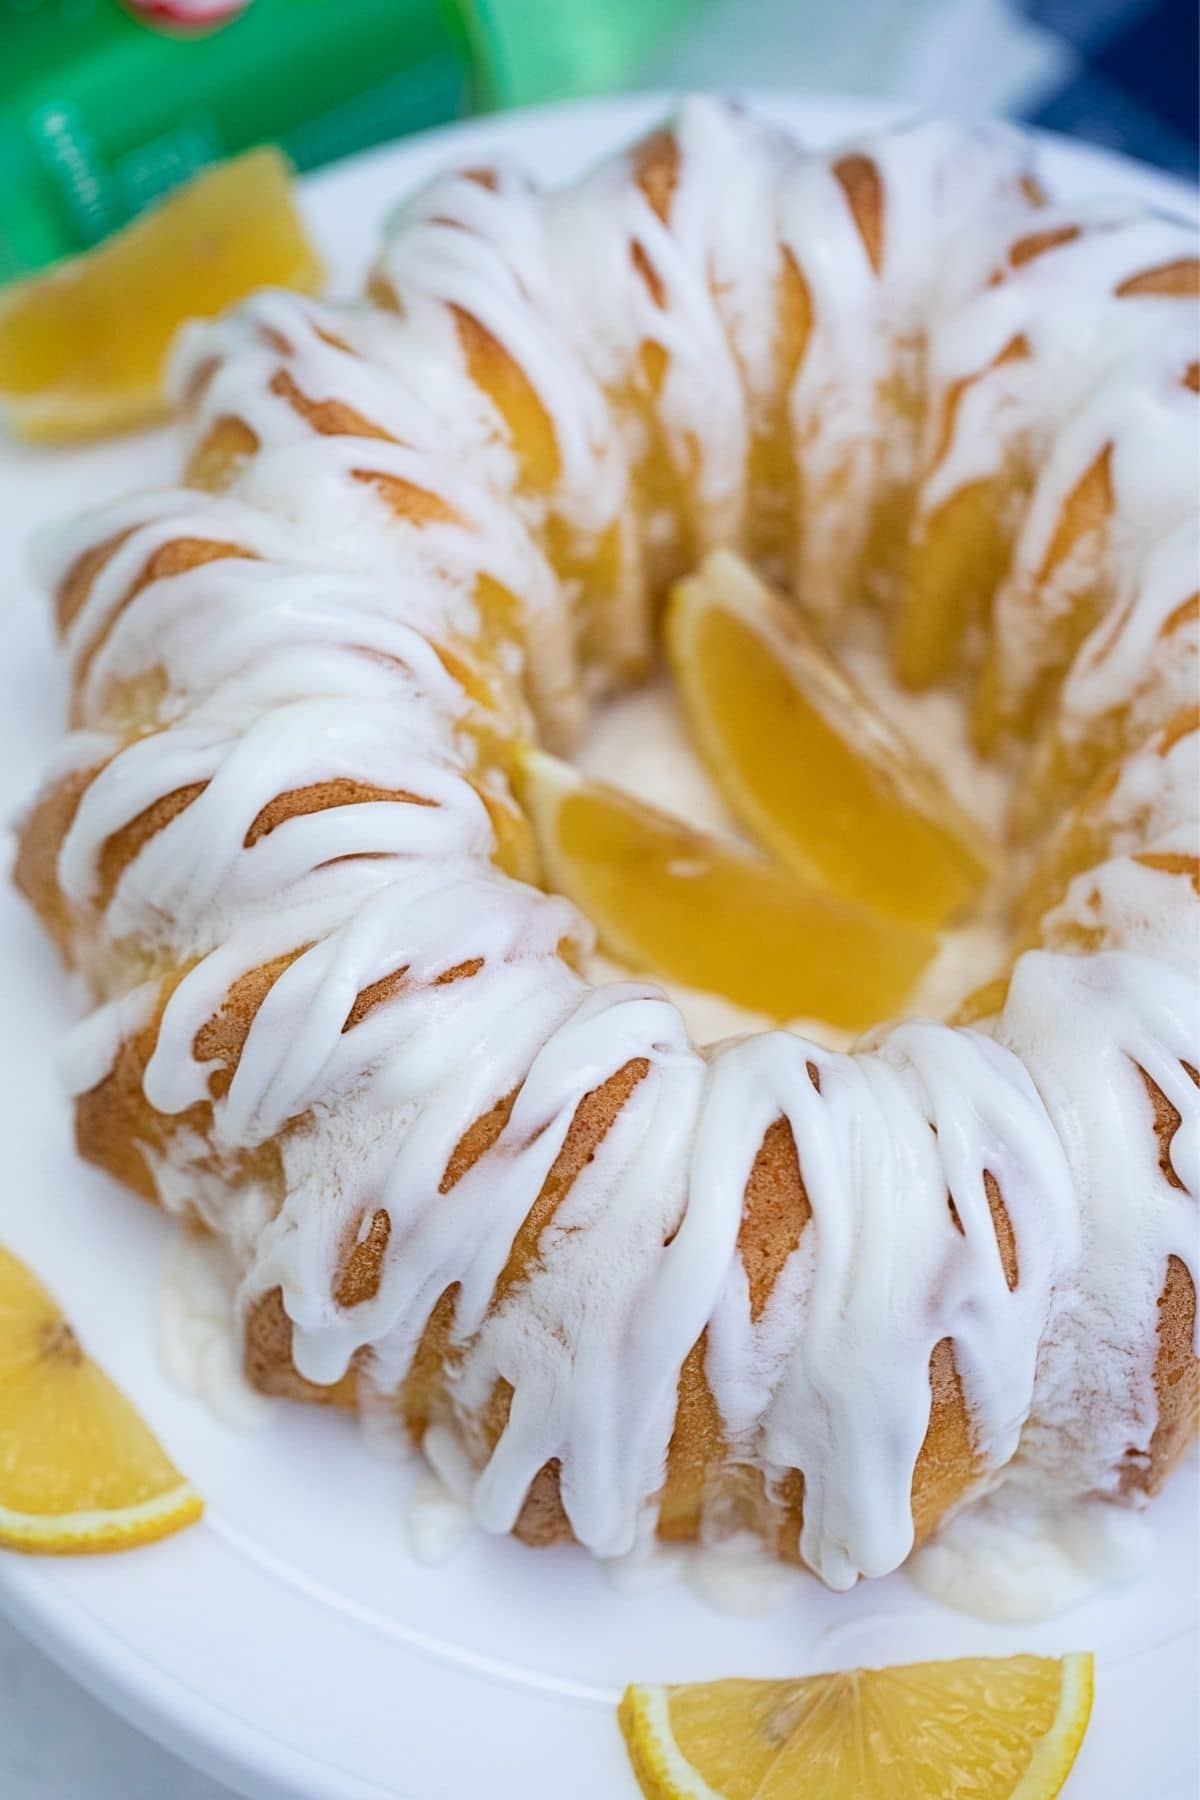 Bundt cake on white plate with glaze on top and lemon wedges on side